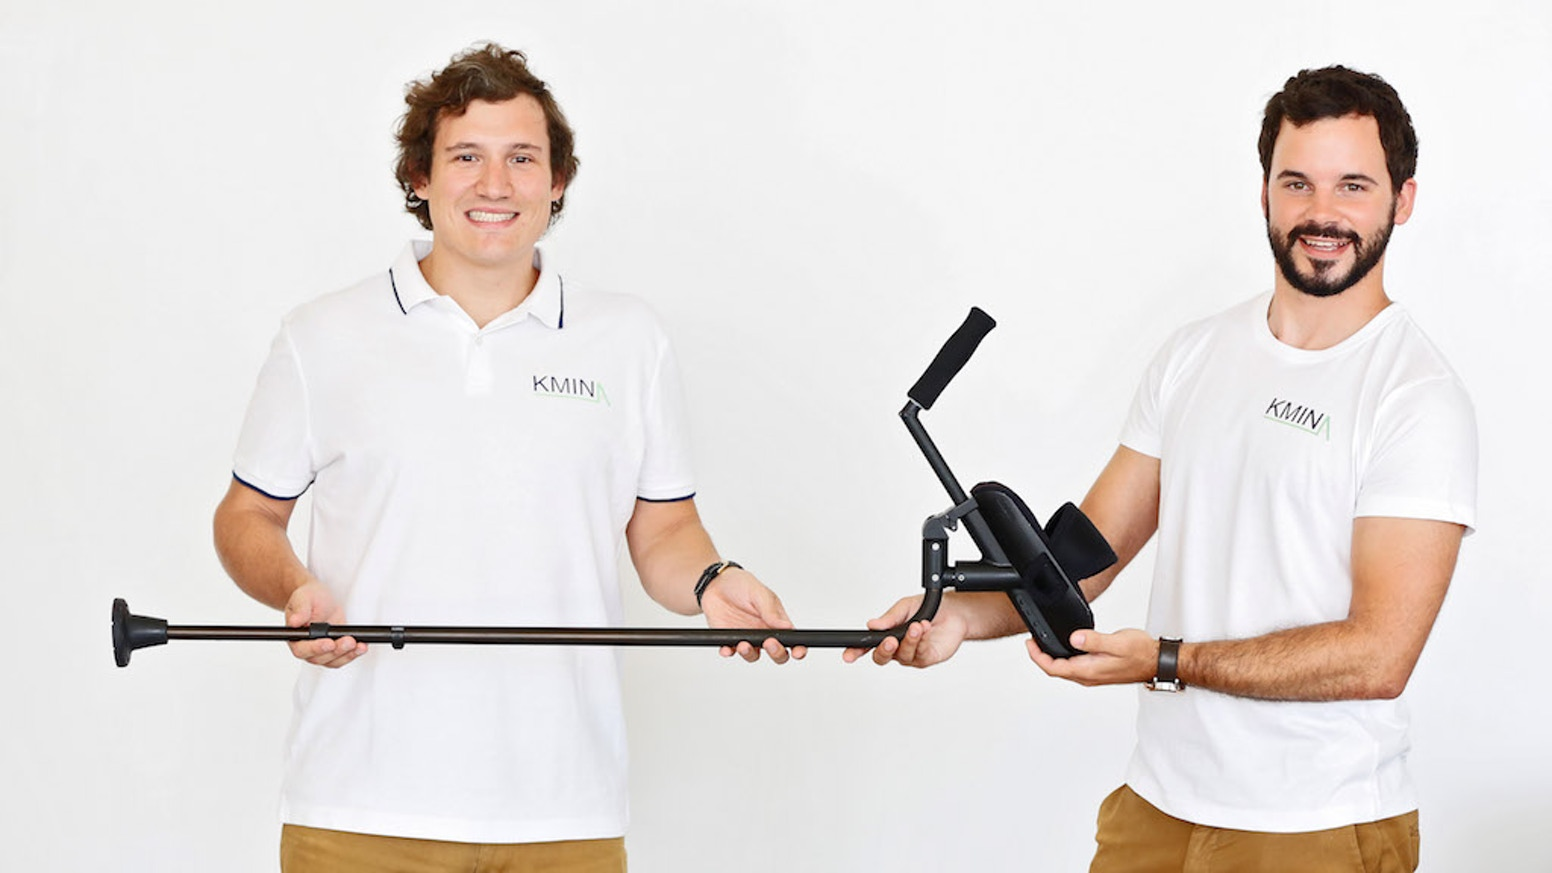 Meet KMINA, these painfree crutches will allow you or people in need to walk farther and safer.